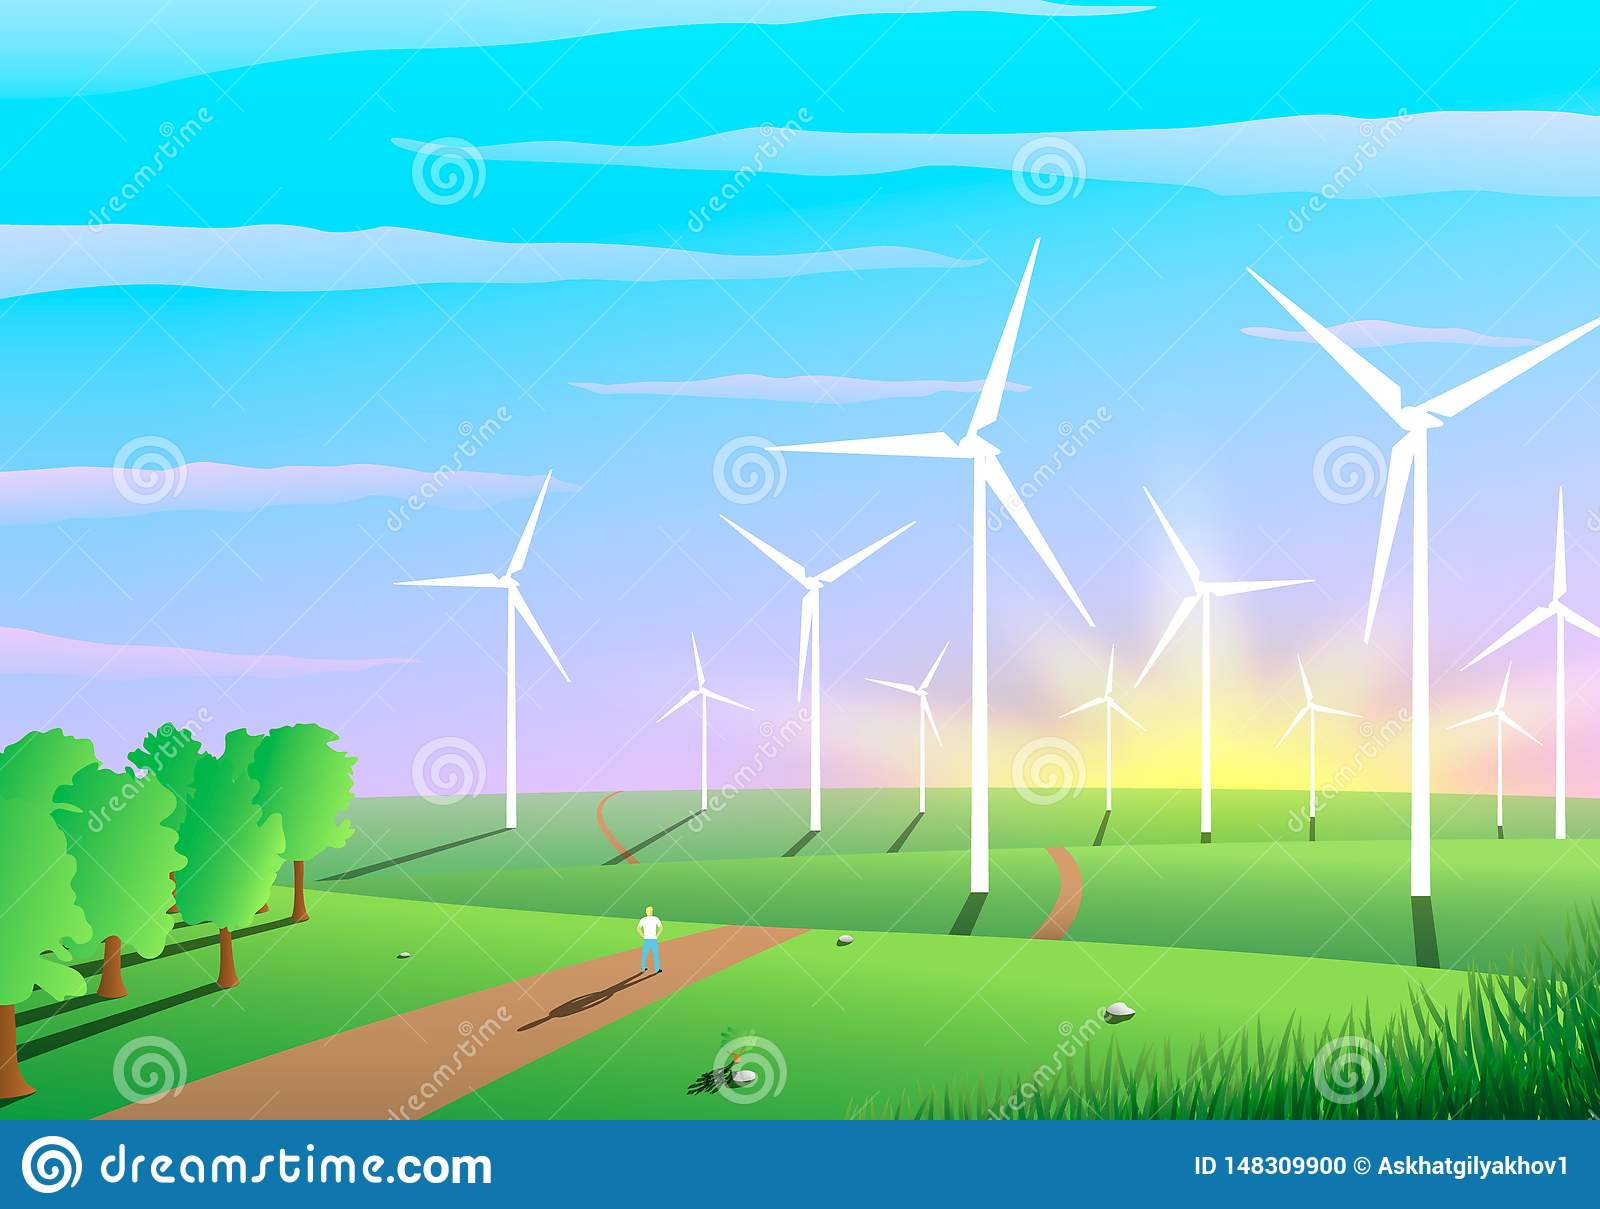 Picturesque landscape of a wind farm, Ecology concept